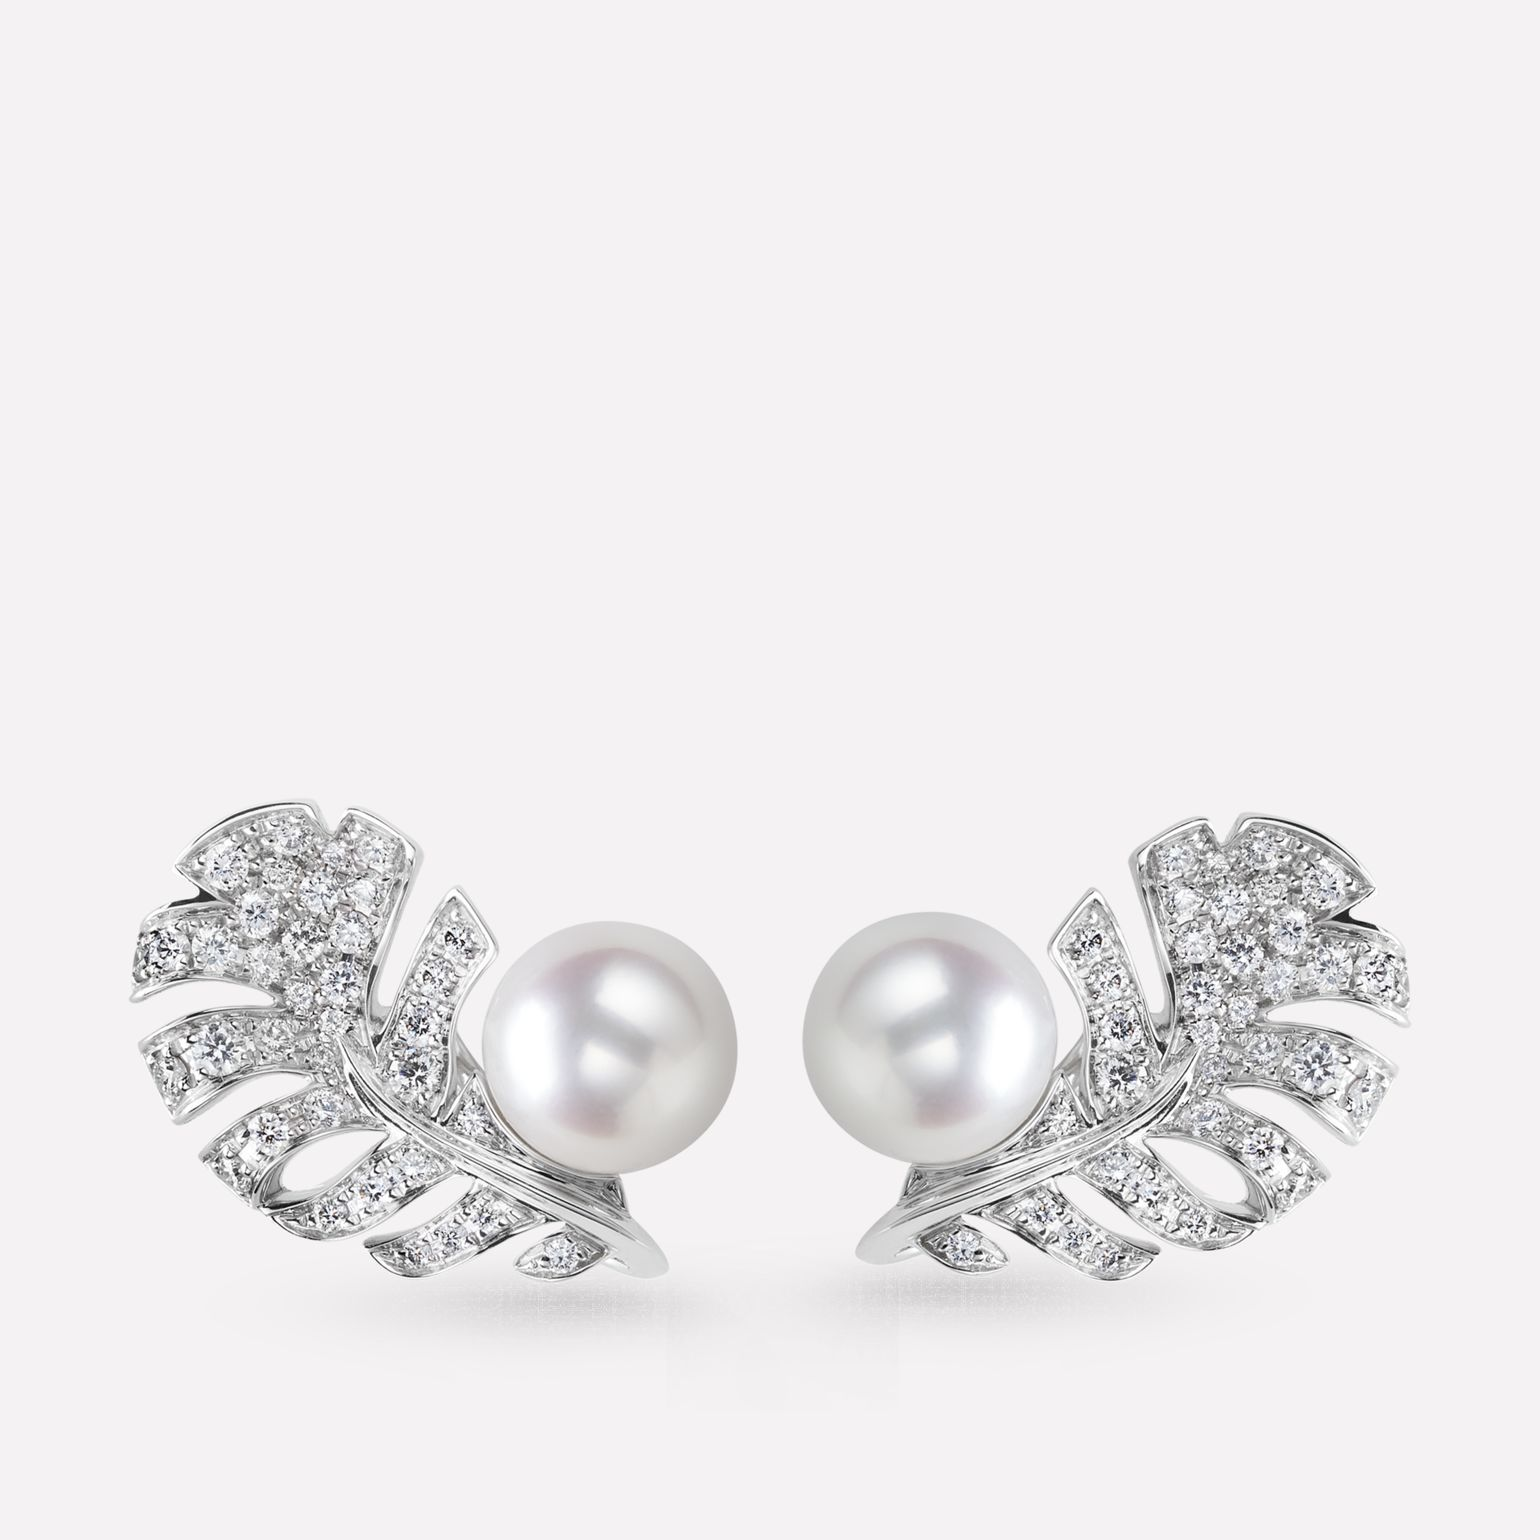 Plume de CHANEL Earrings Plume earrings in 18K white gold, diamonds and cultured pearl